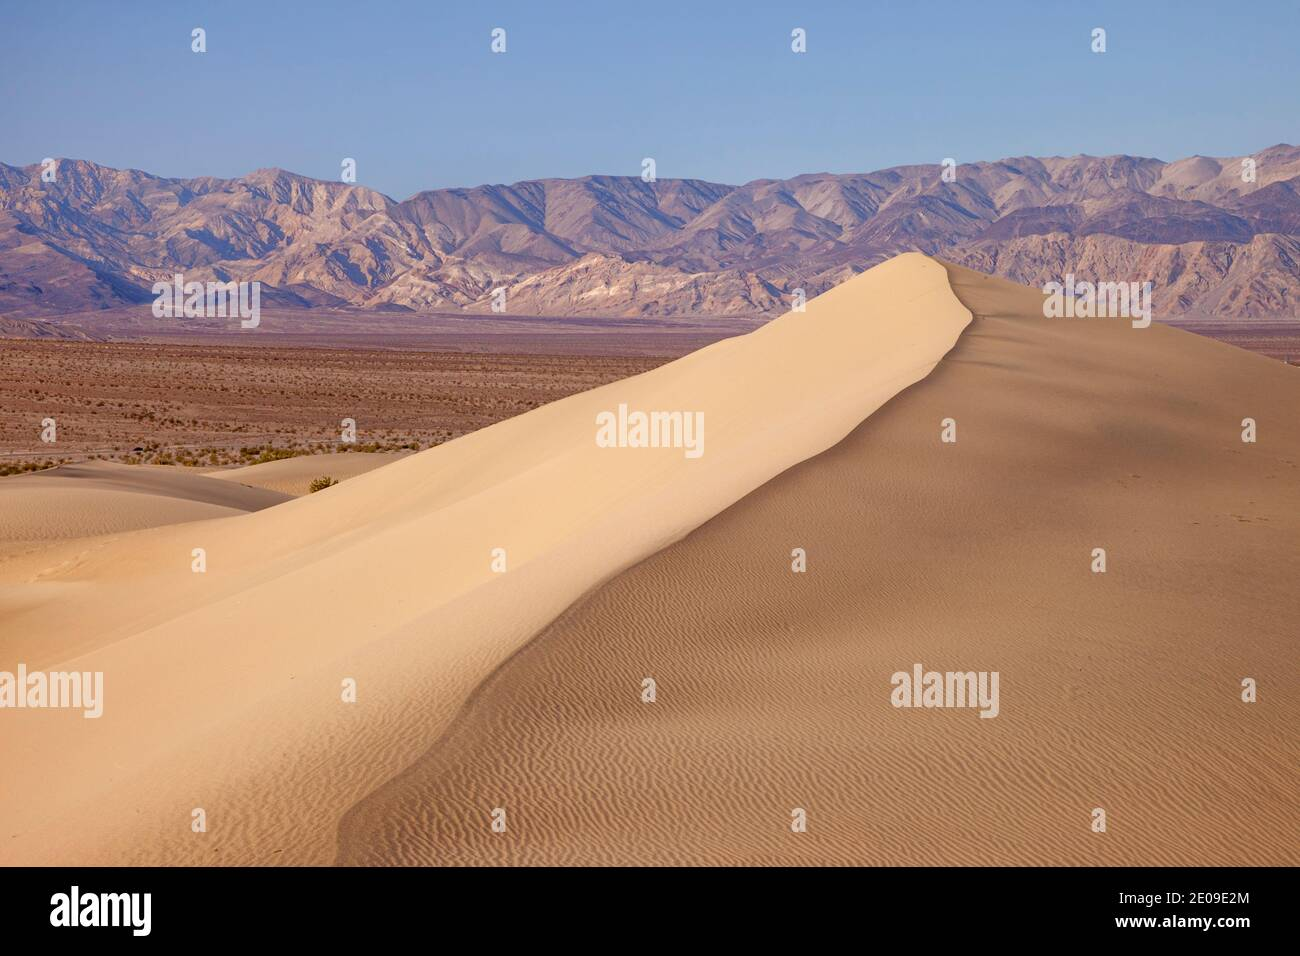 Mesquite Dunes at Stovepipe Wells, Death Valley National Park, California USA Stock Photo